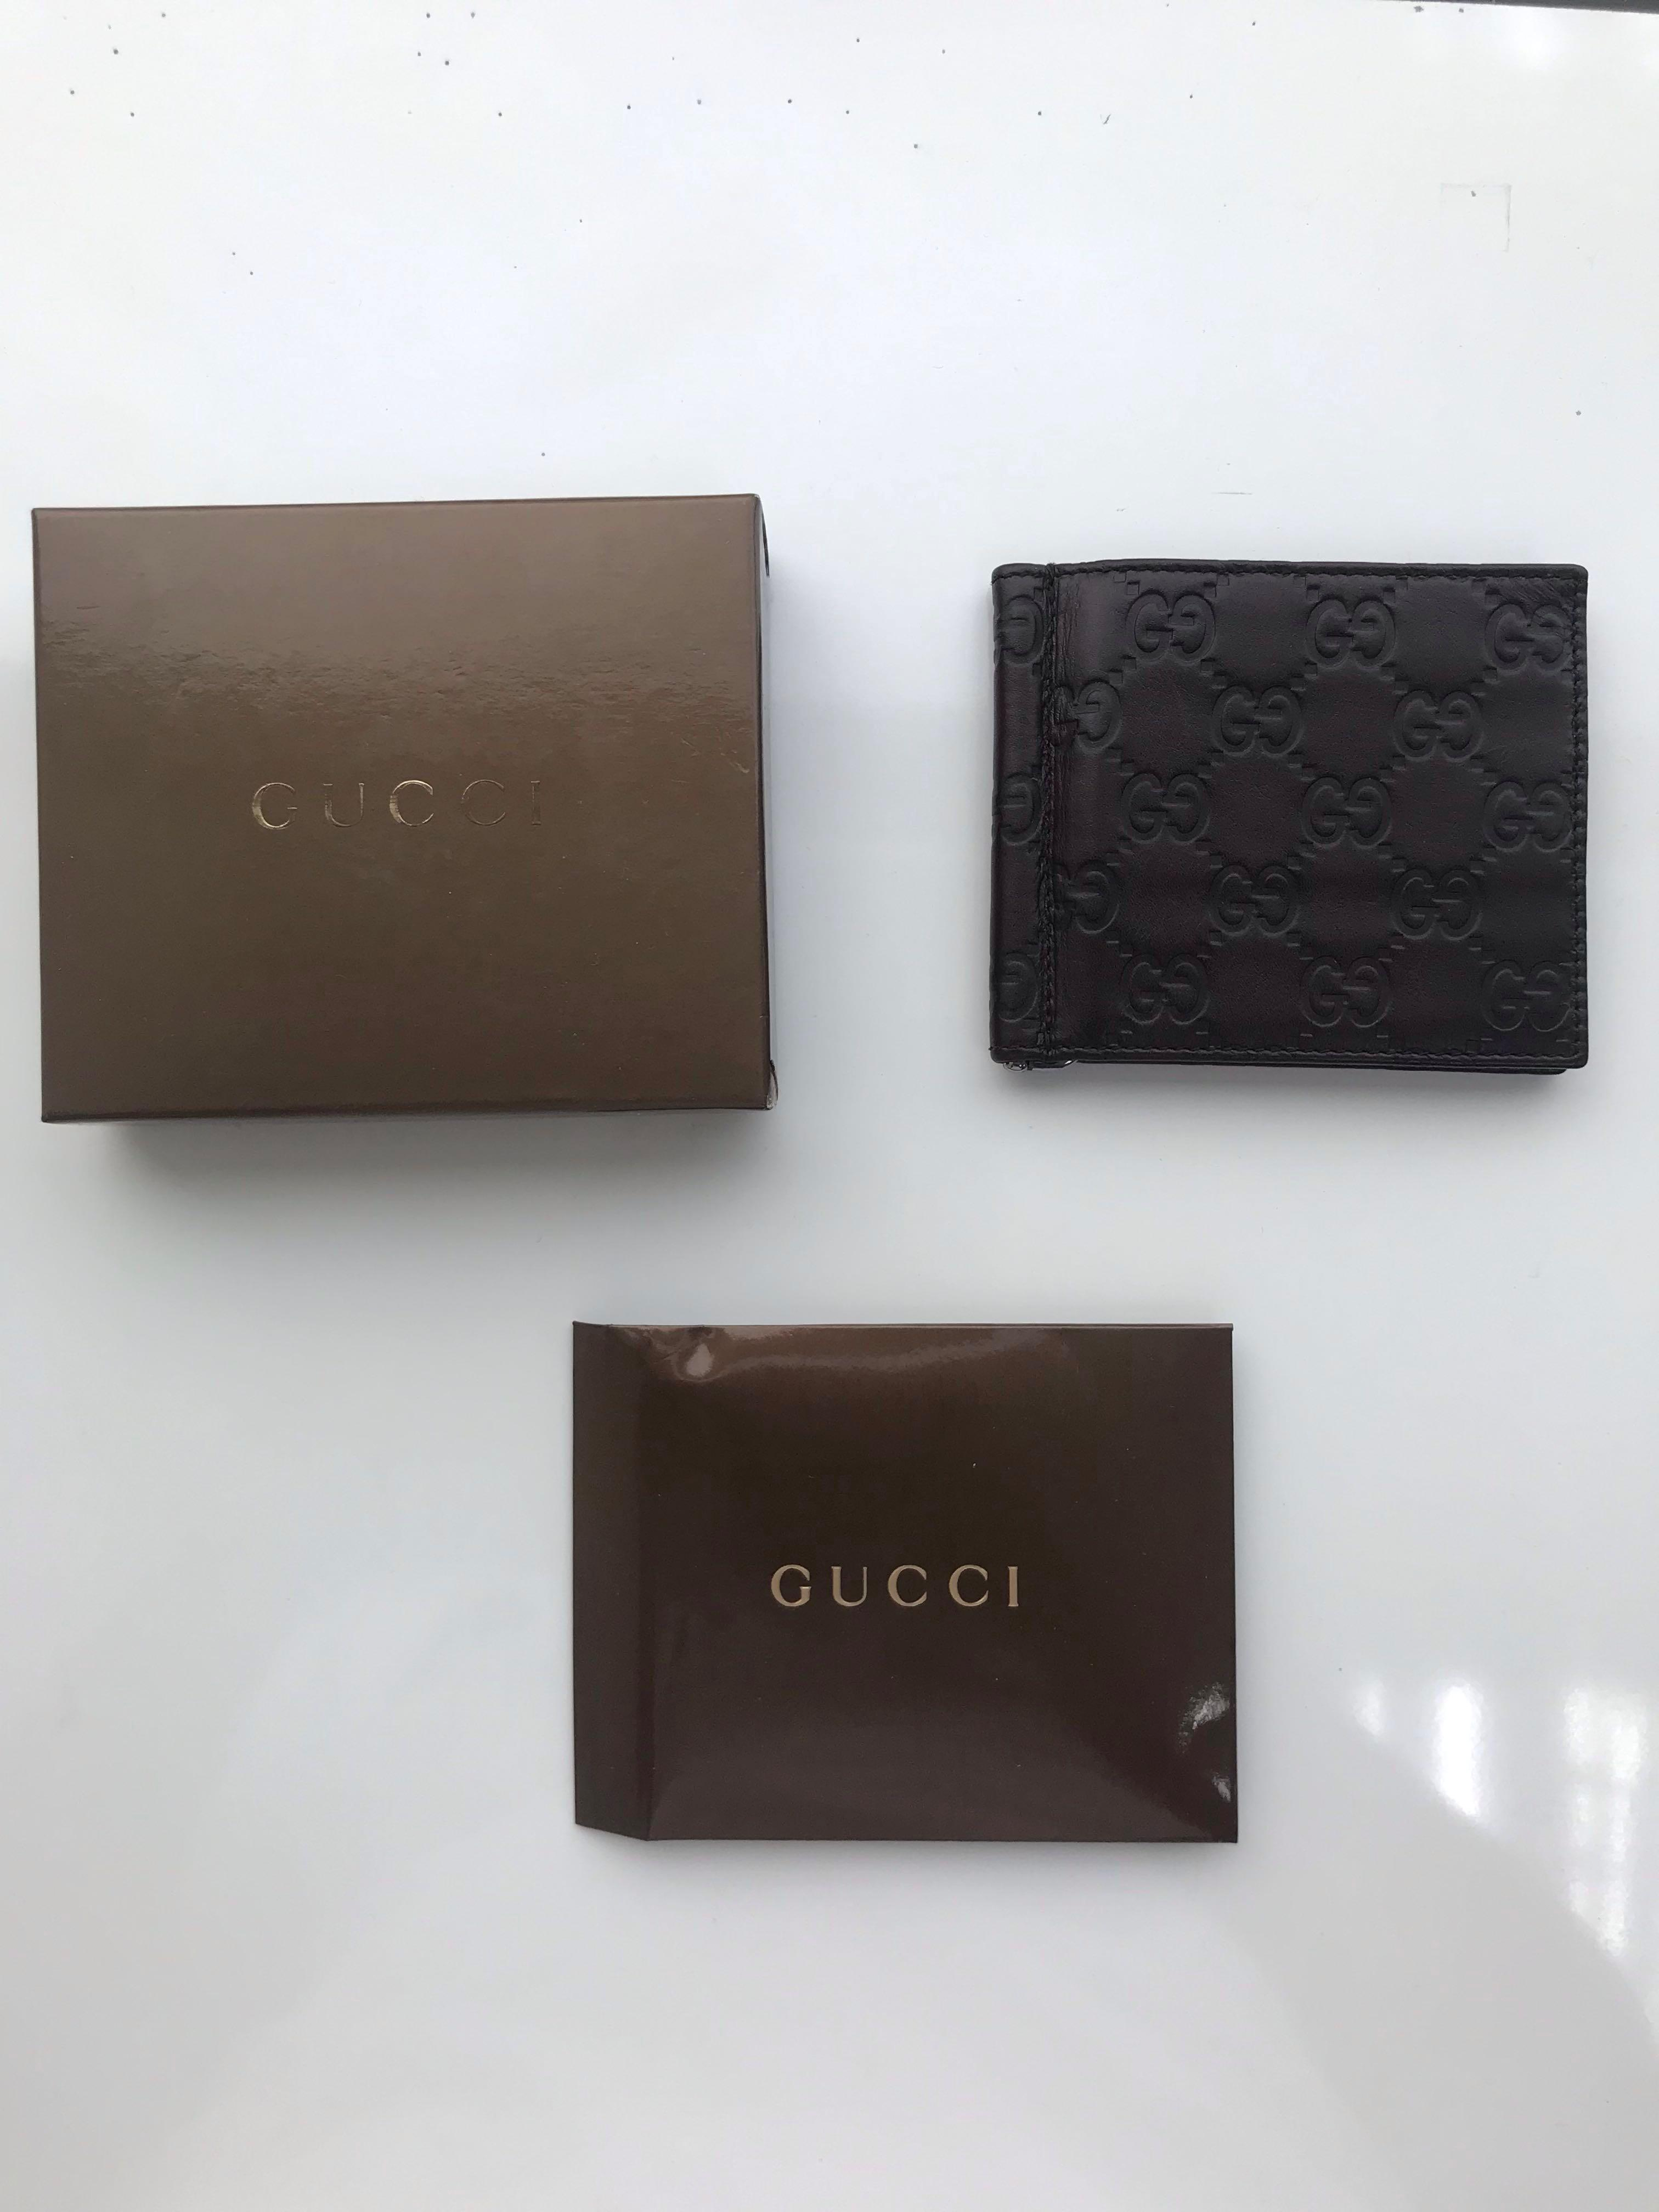 Gucci Monogram Money Clip Men S Fashion Bags Wallets Wallets On Carousell